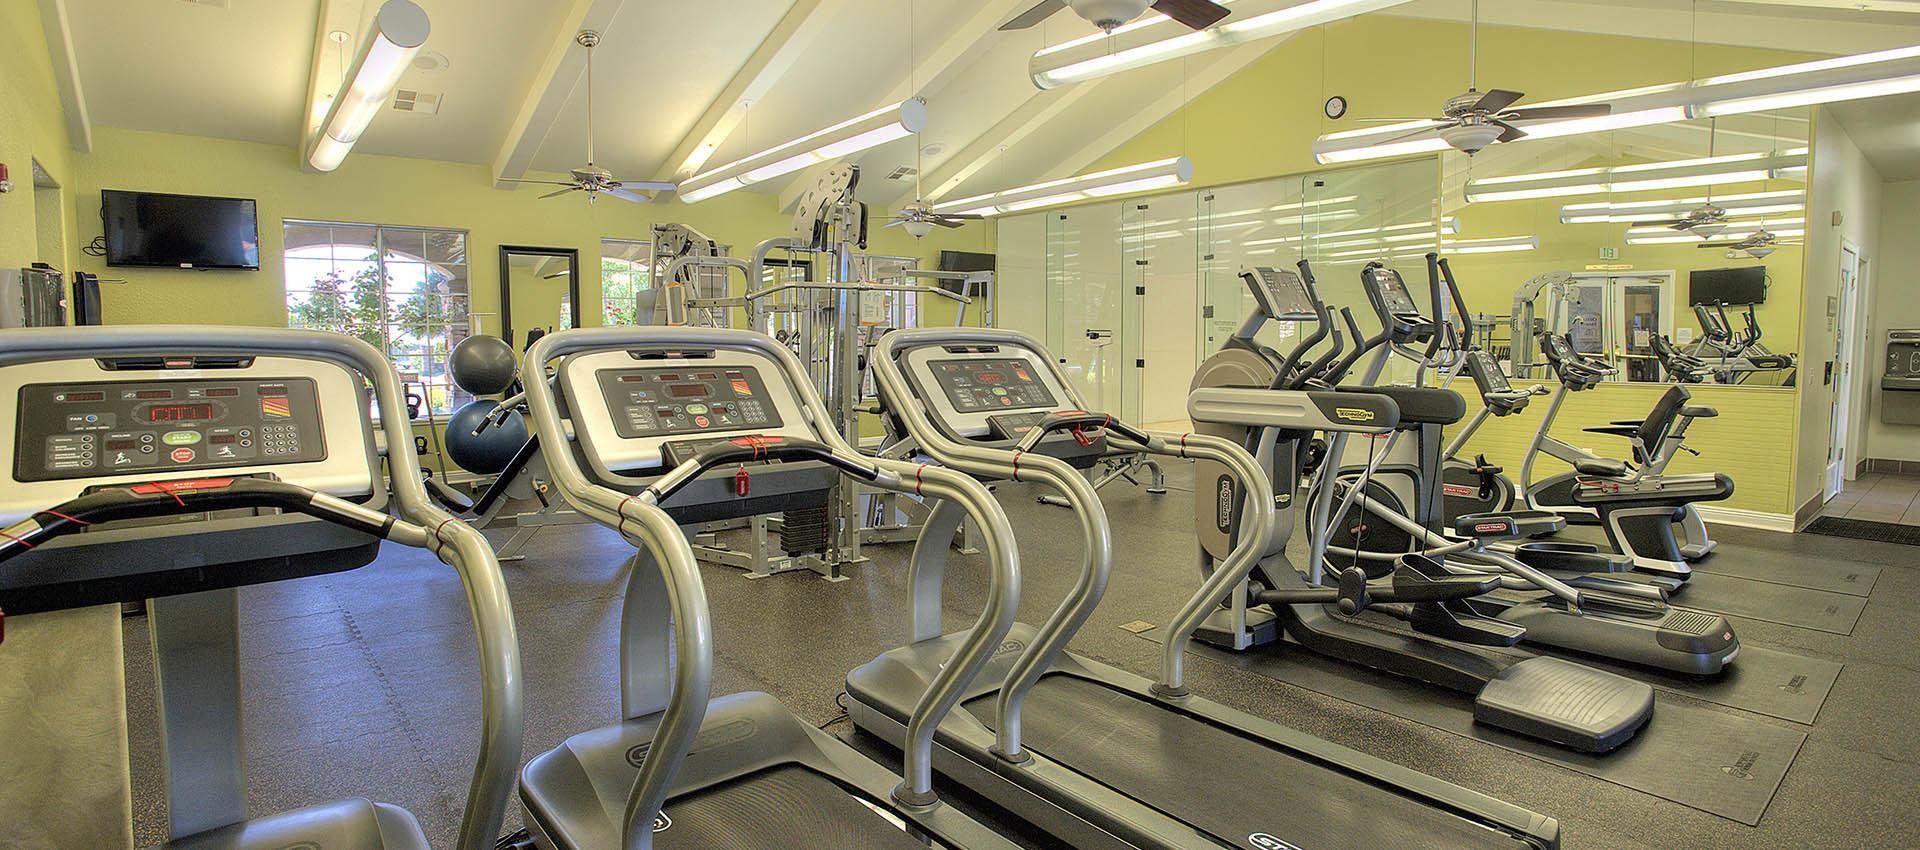 Fitness Center at River Oaks Apartment Homes in Vacaville